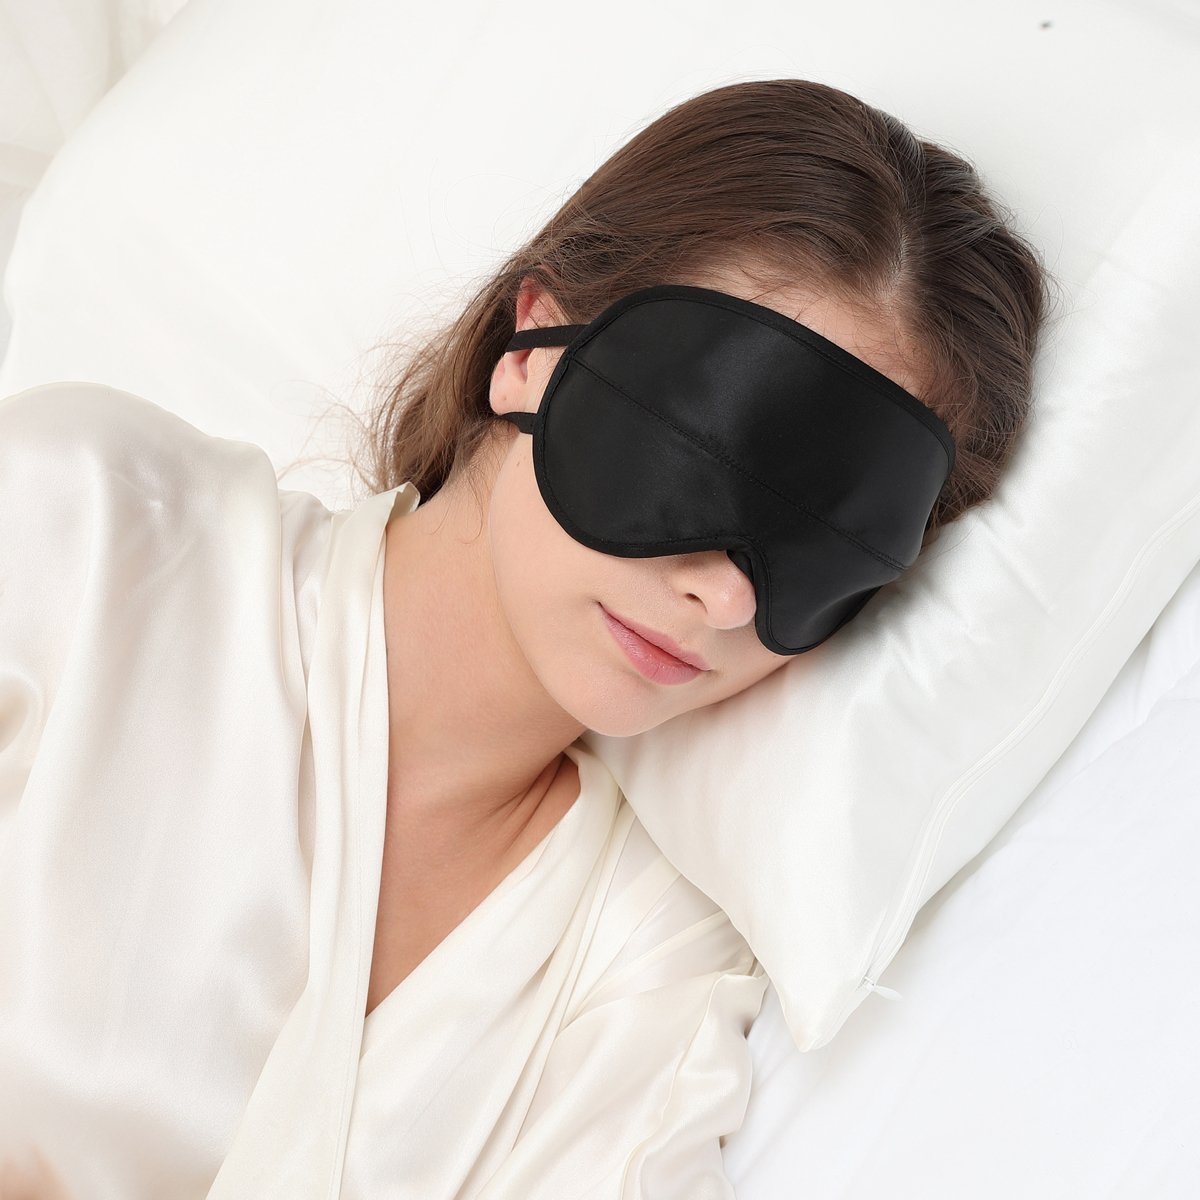 ALASKA BEAR® Natural Silk Sleep mask & Blindfold, Super-Smooth Eye mask (Two Straps, Contoured Cups) by Alaska Bear